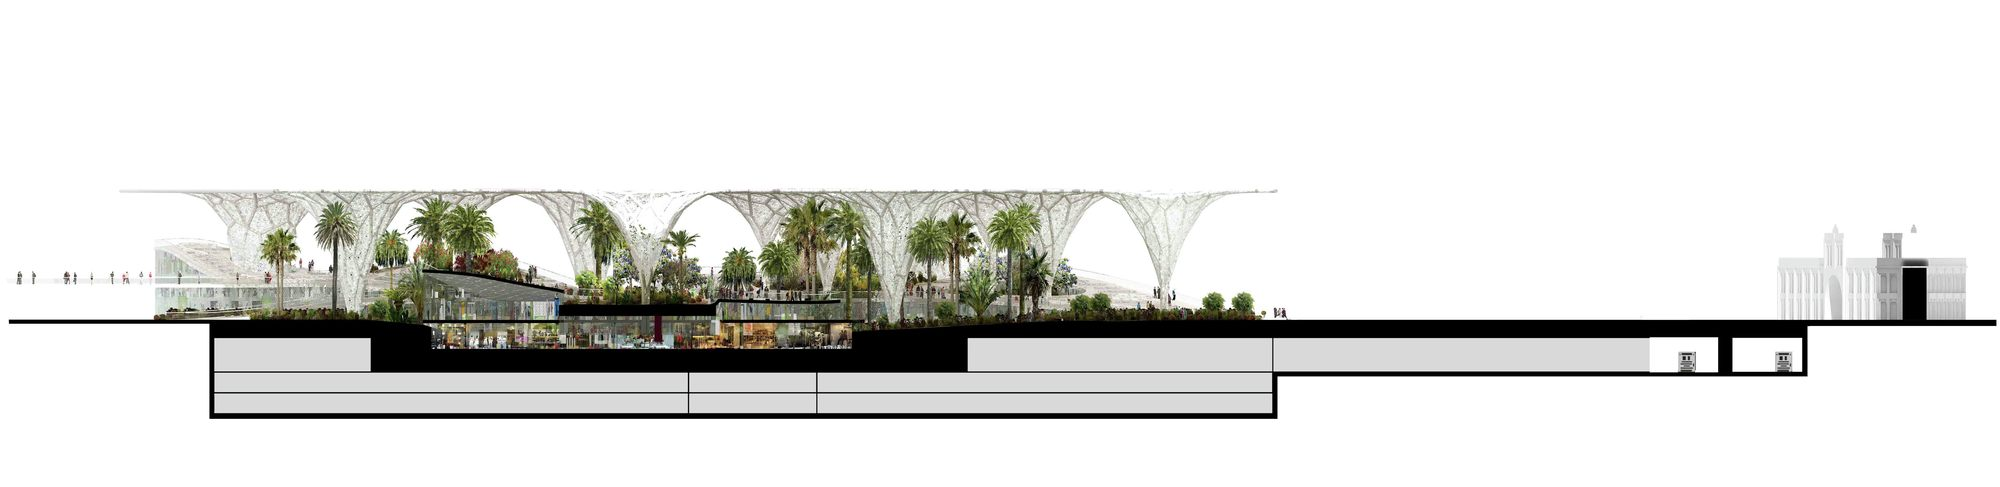 Gallery Of Urban Oasis Proposal Influx Studio 5